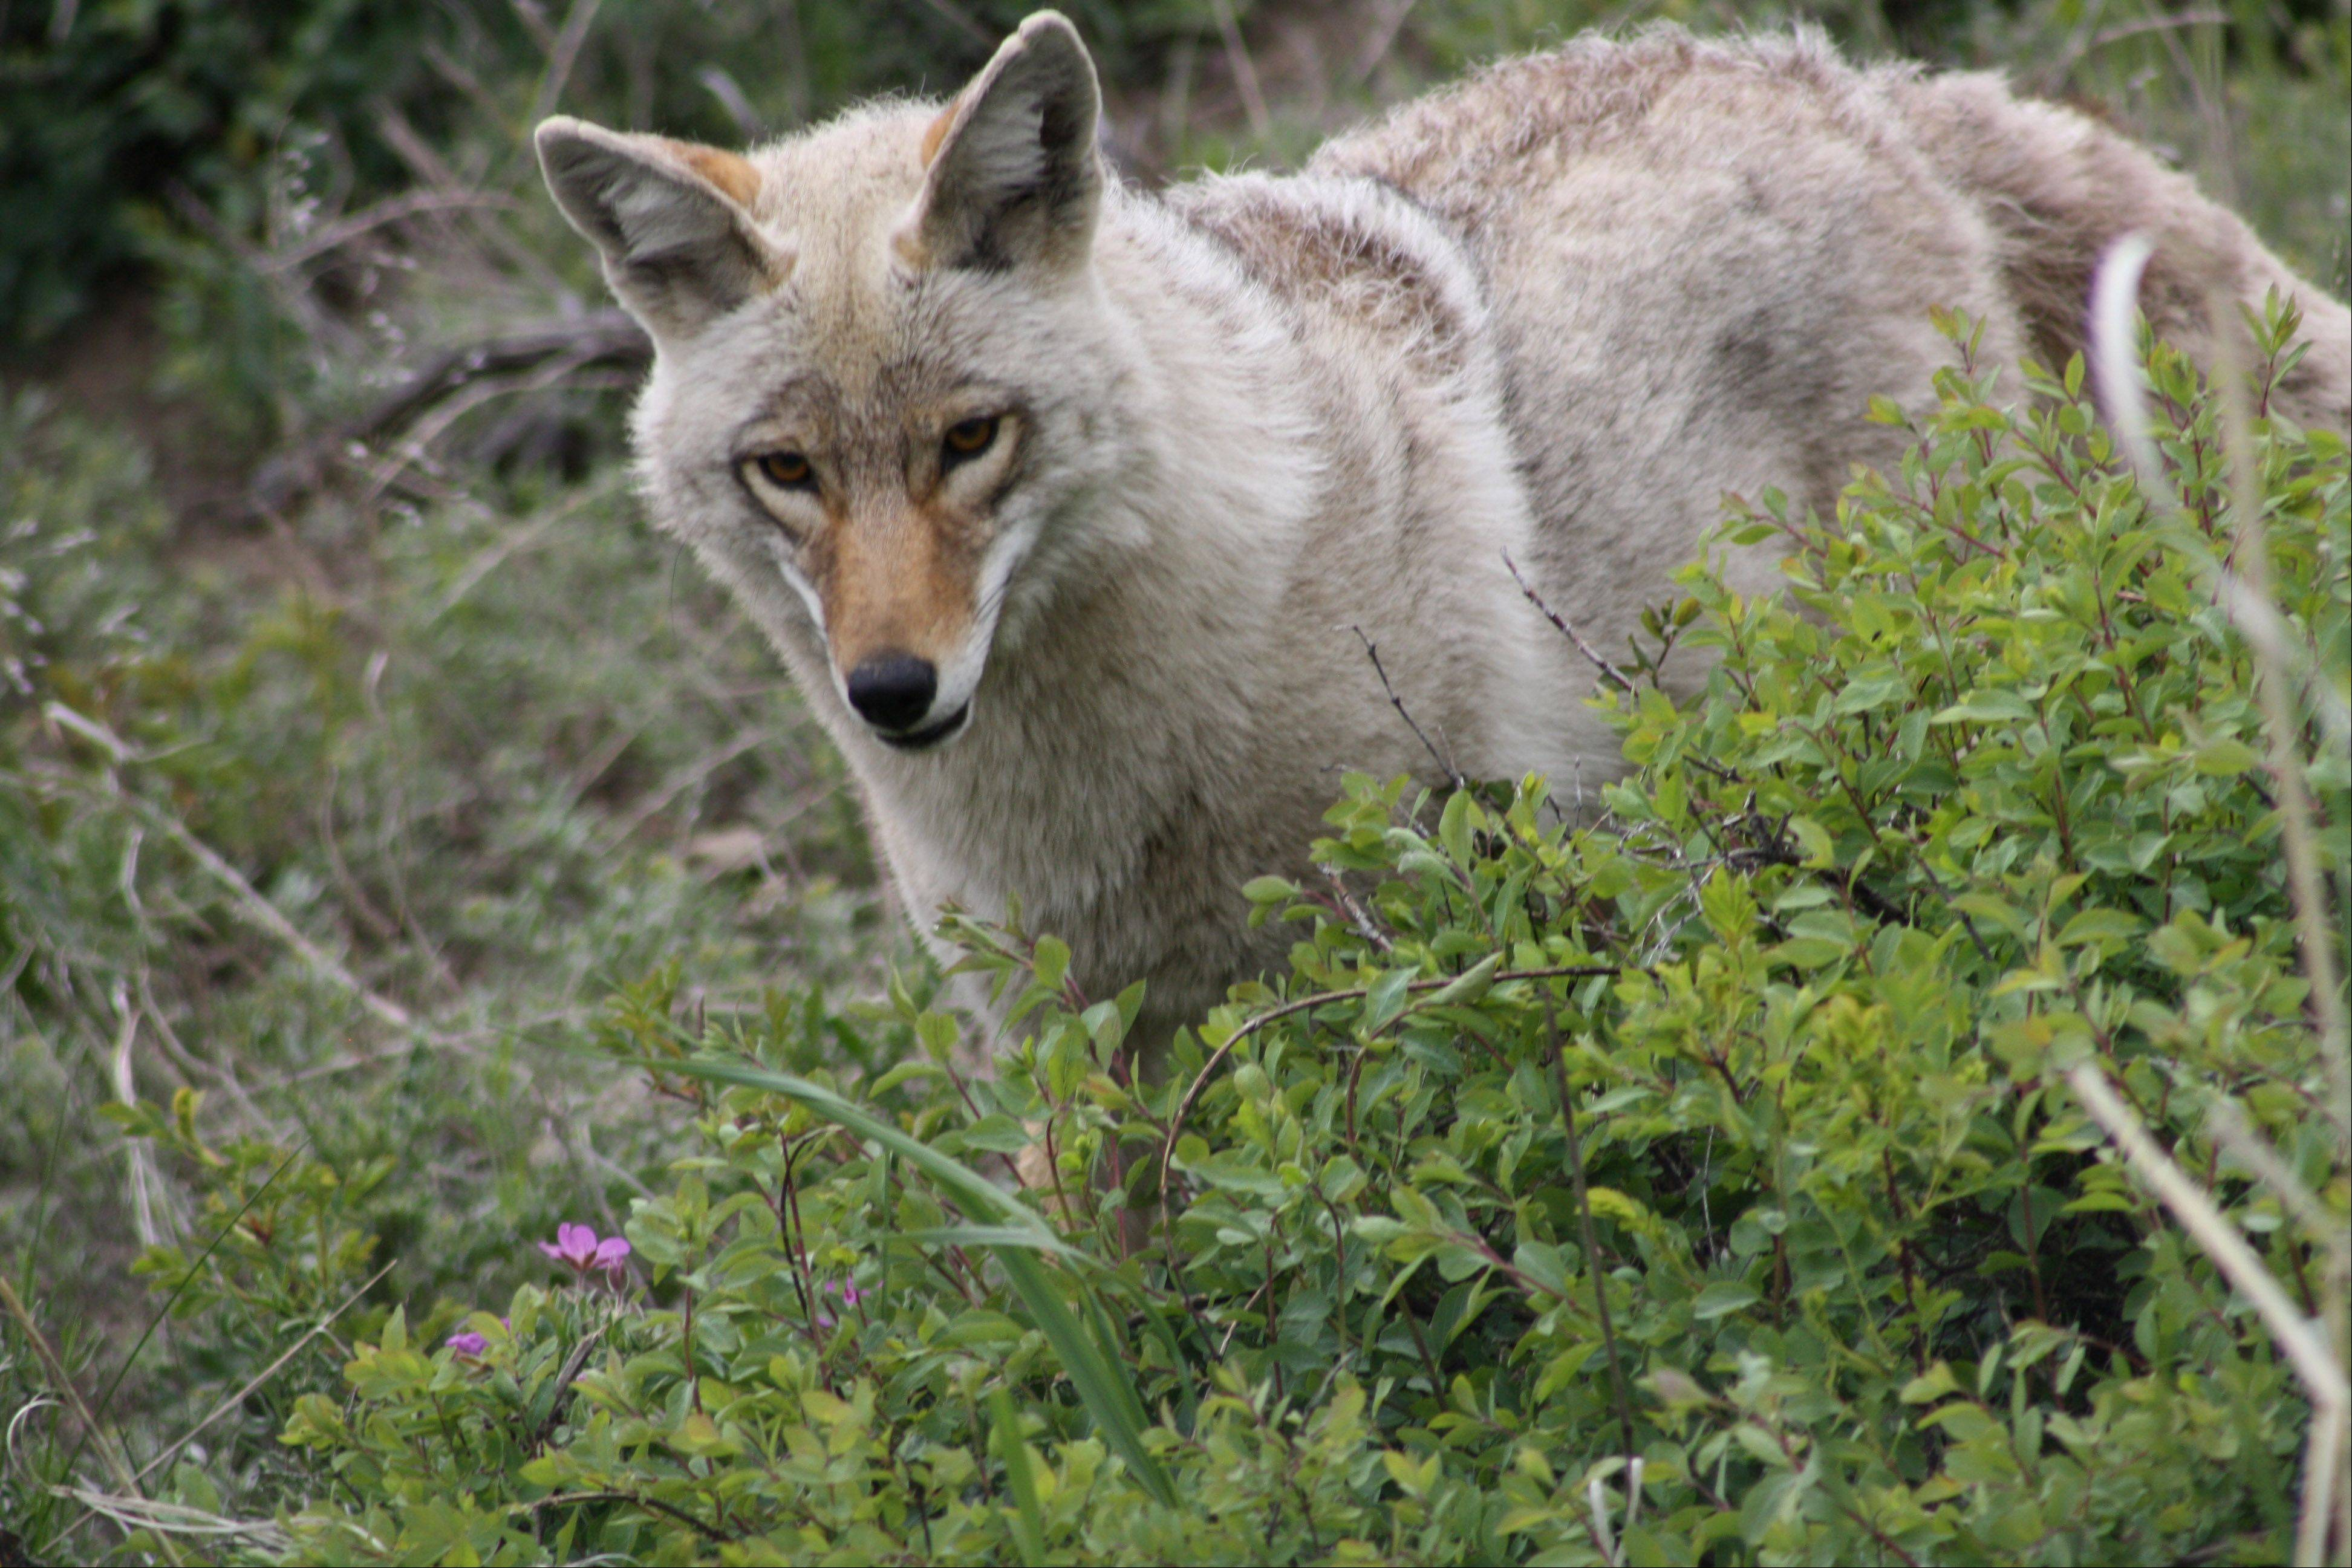 Coyotes have a natural fear of people but they have adapted well and it is not unusual to see them in our midst, be it near busy urban gathering spots or near woodsy open areas.